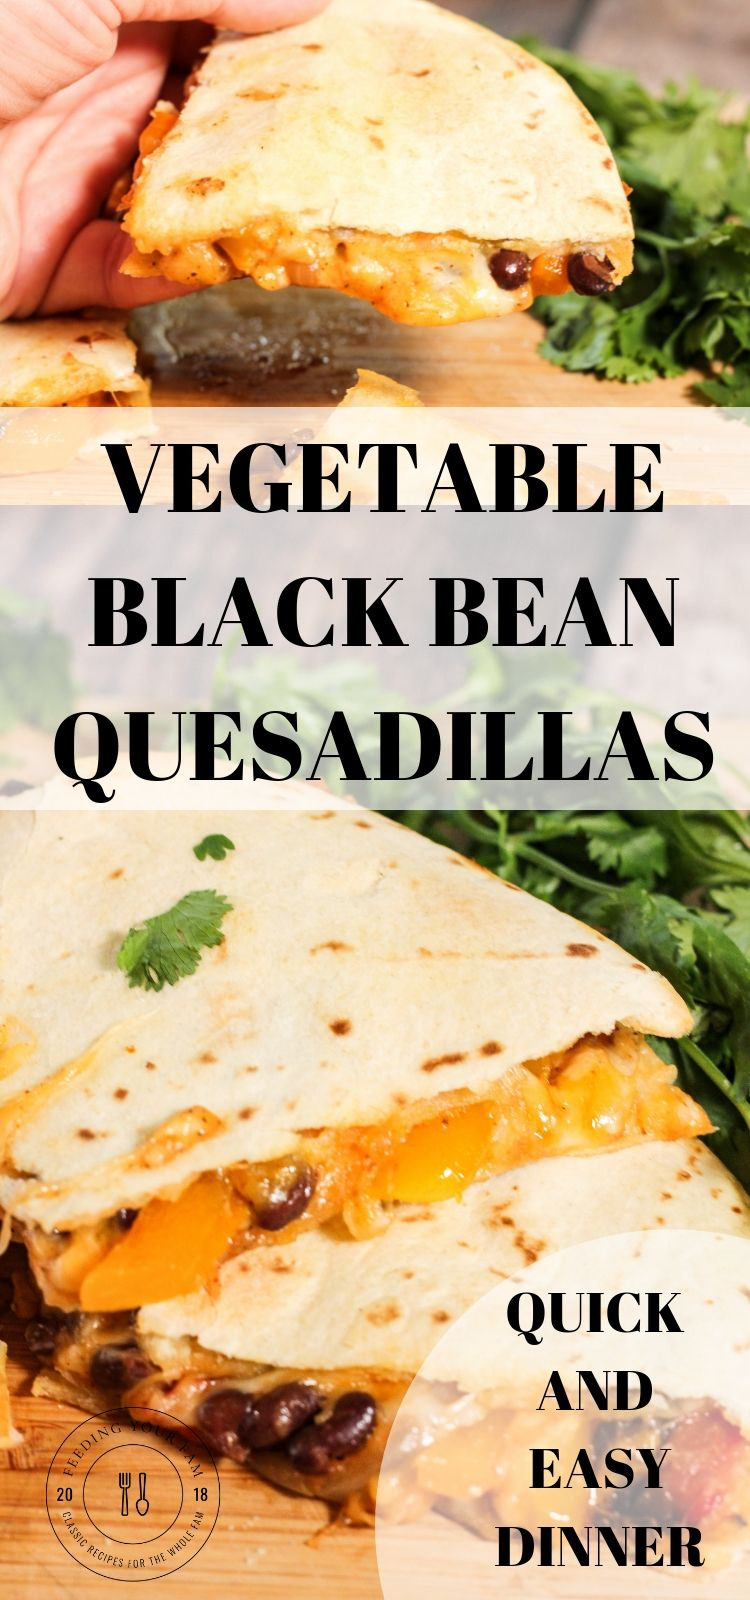 cooked cheese vegetable black bean quesadillas